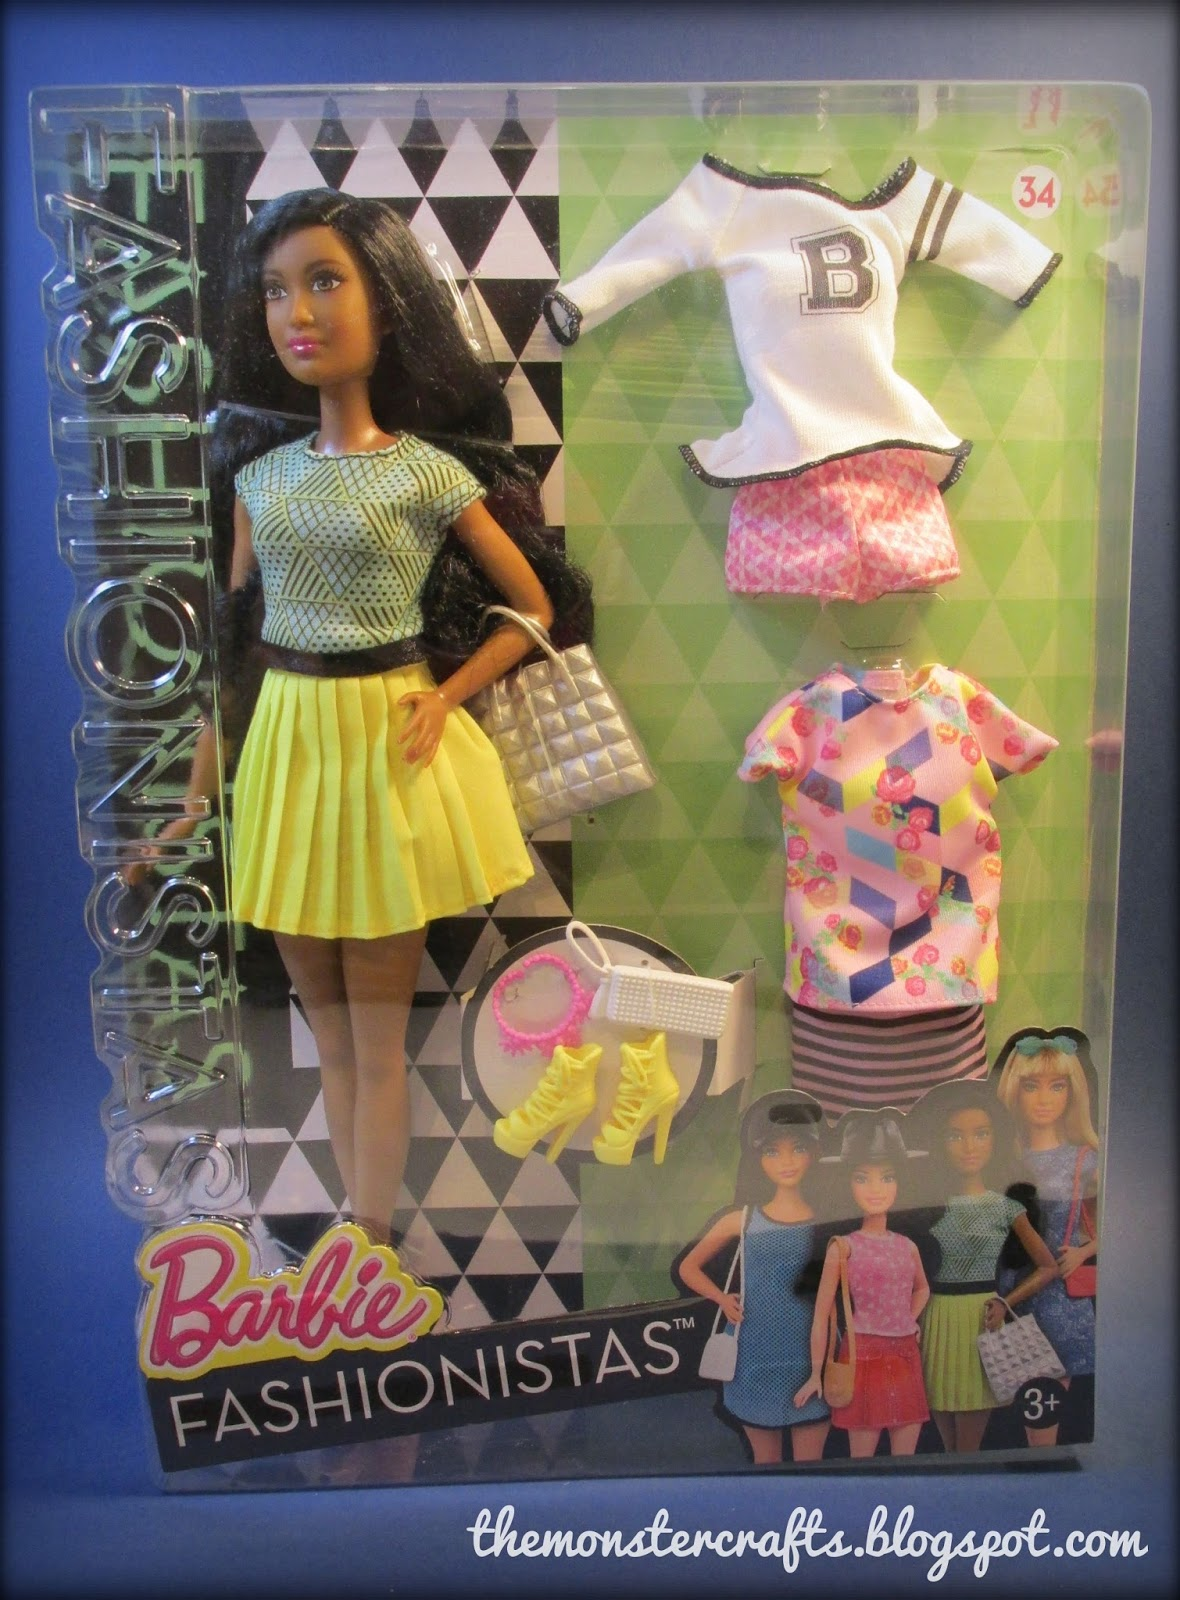 the fashionistas 2 review